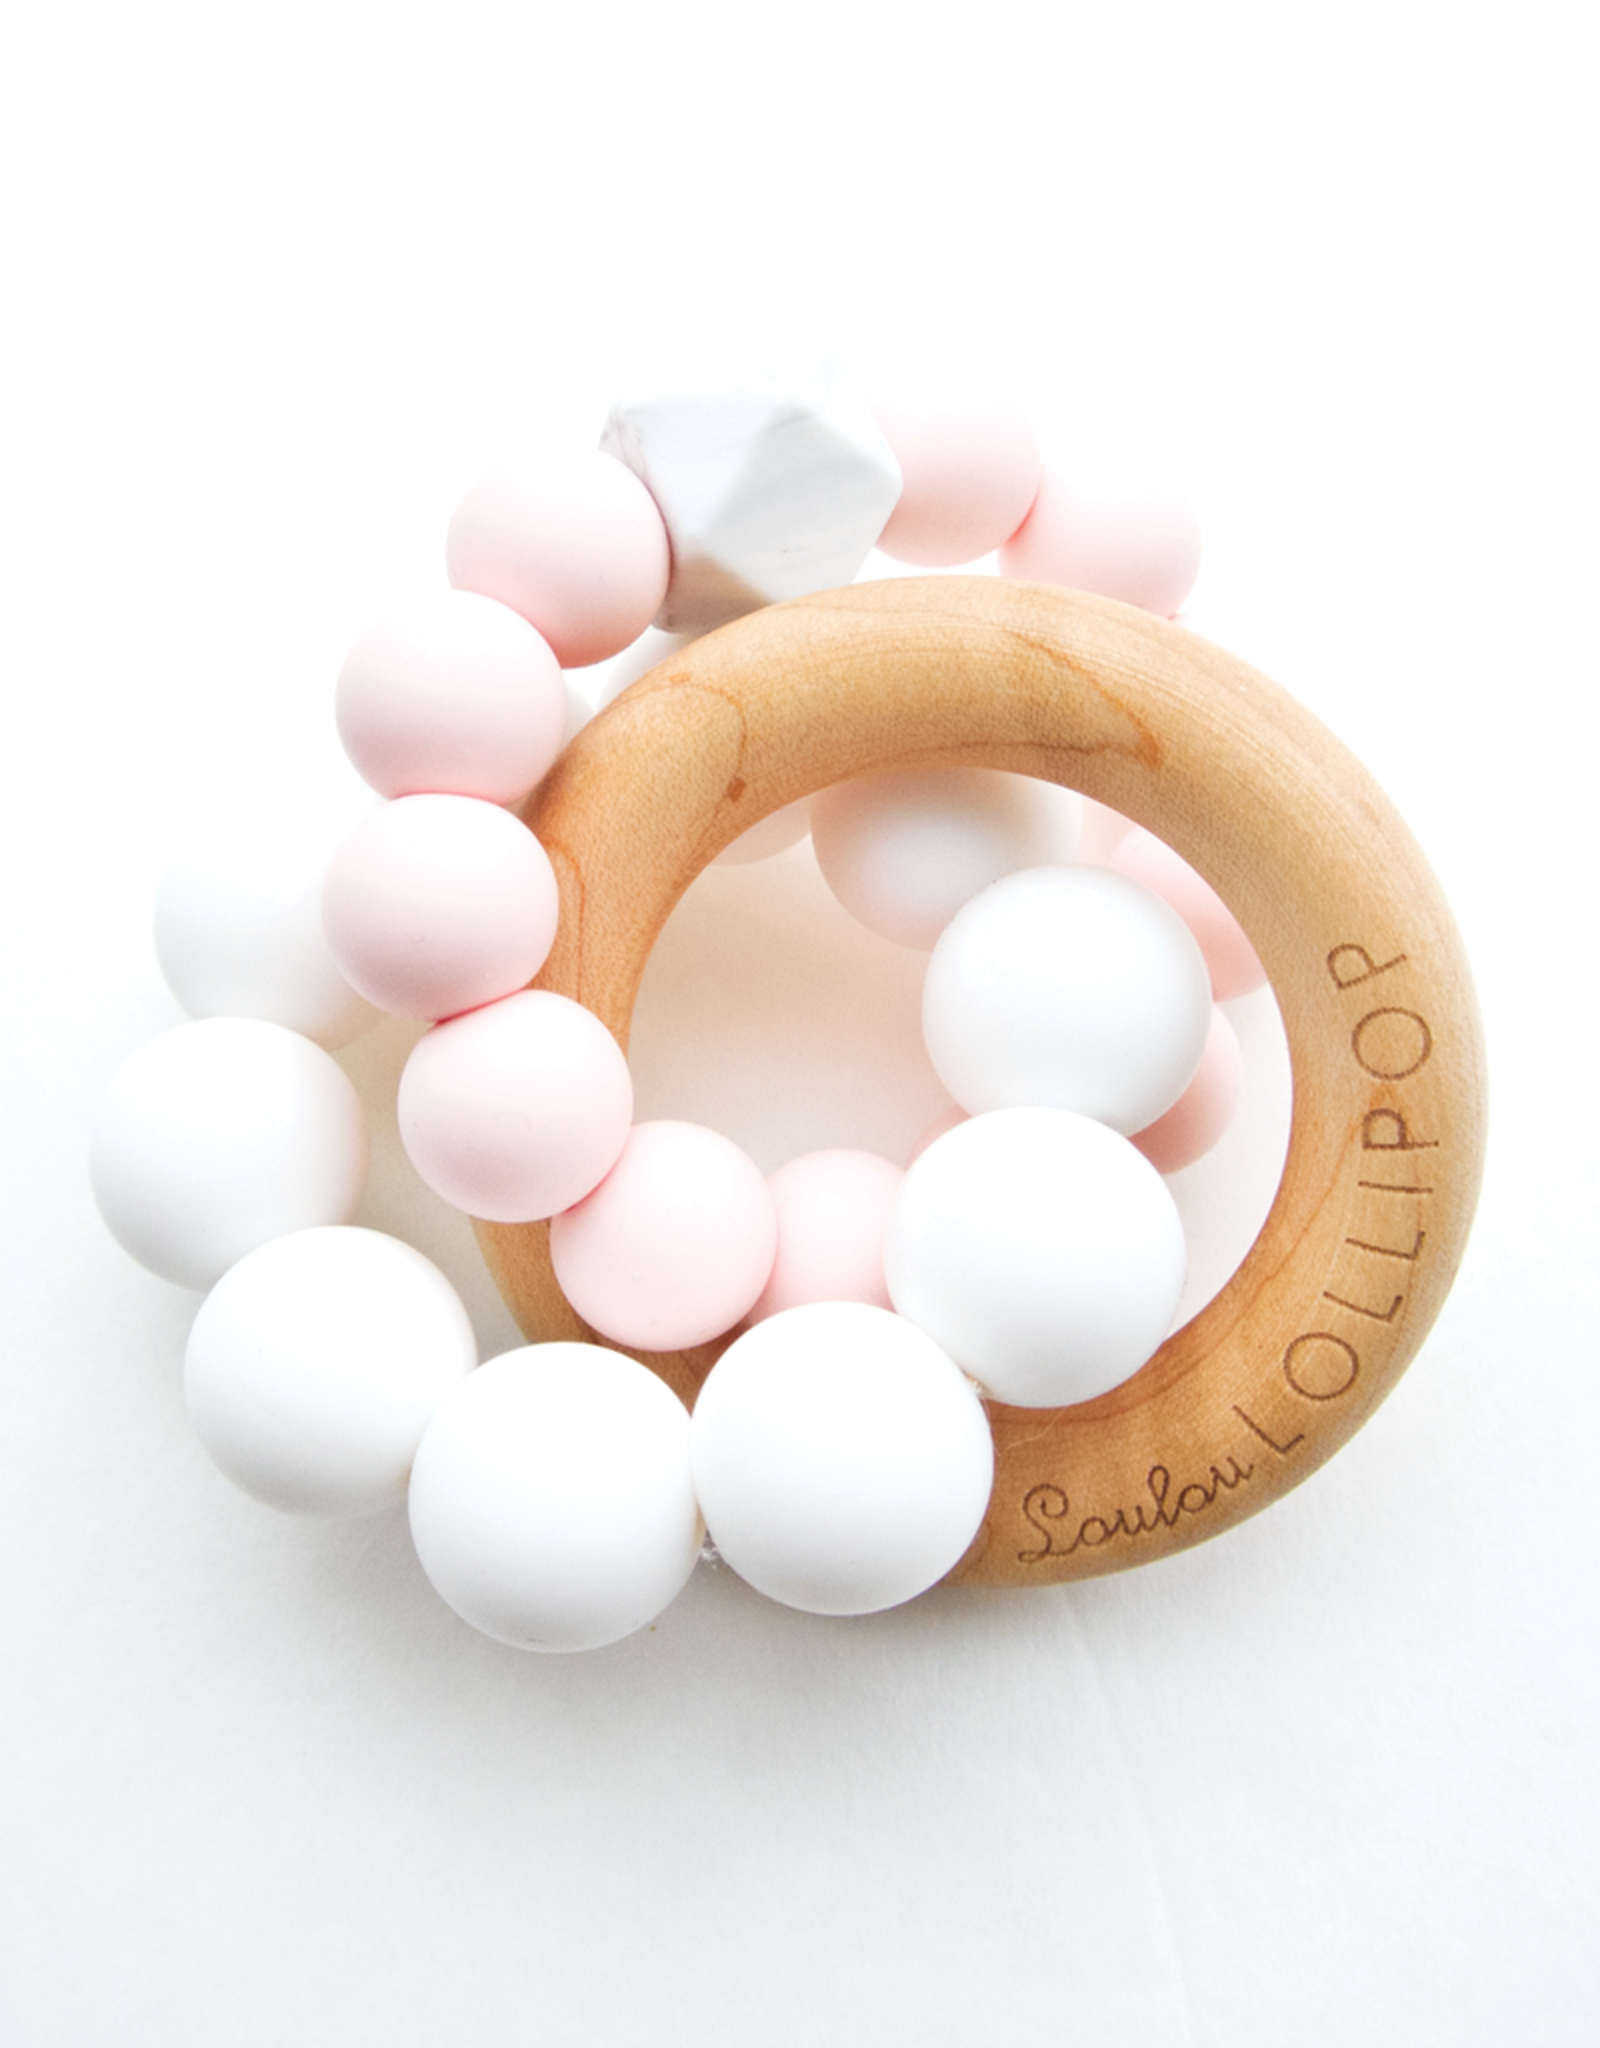 Loulou Lollipop Trinity Silicone and Wood Teether - Pink Quartz